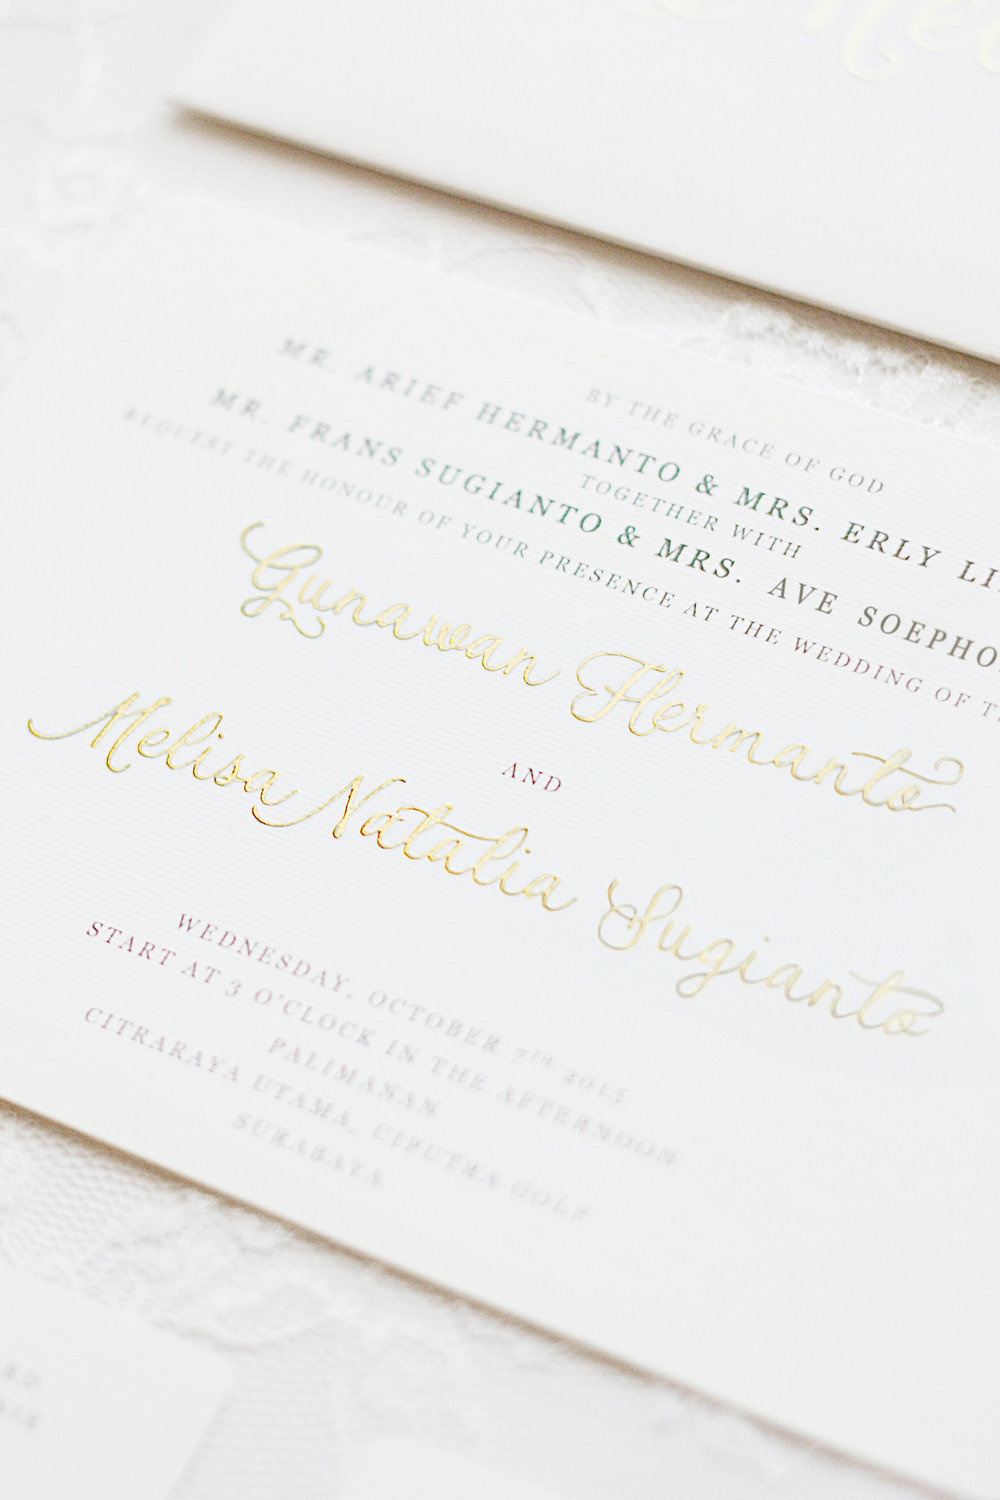 GunawanMelisa_WeddingInvitation04